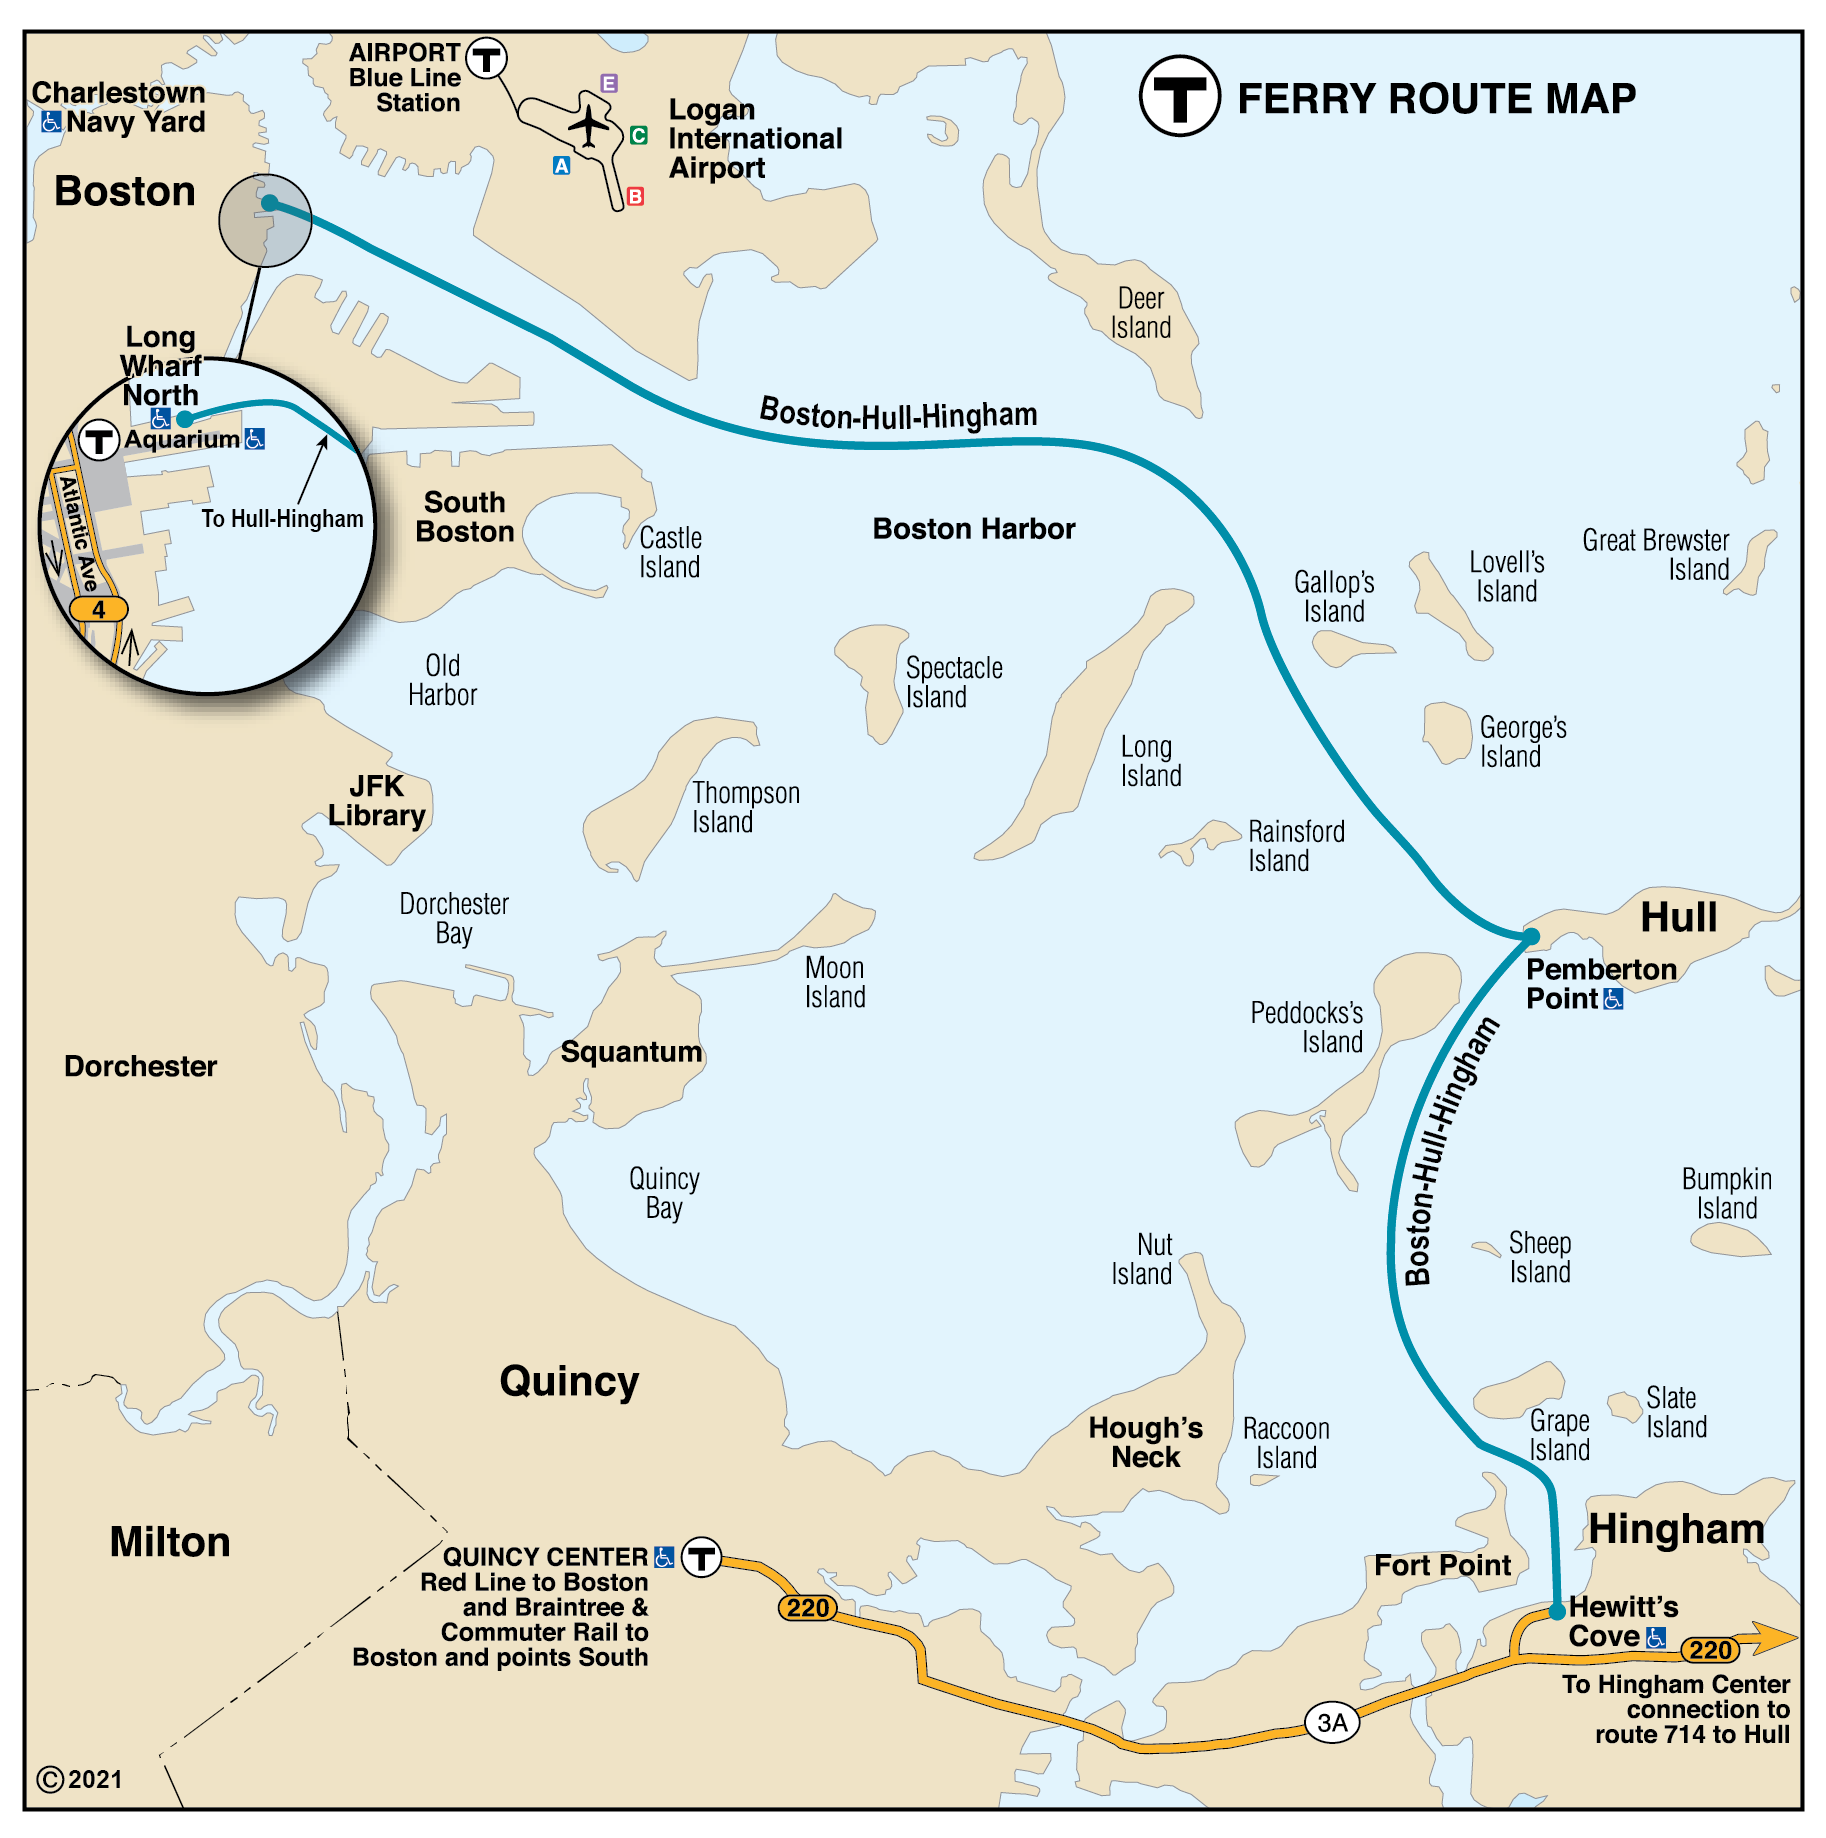 Ferry map with only the Boston-Hull-Hingham (F2H) ferry route, effective Jan 23, 2021